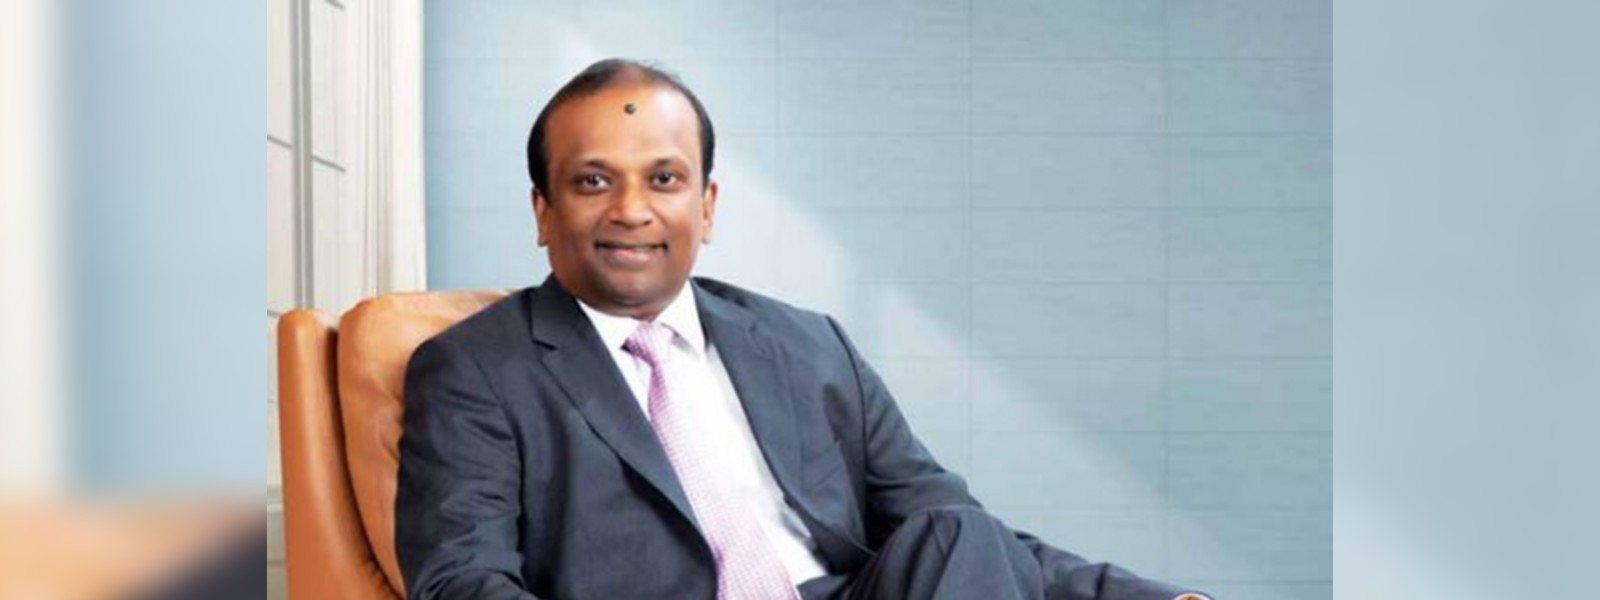 Chairman of the National Carrier – Ashok Pathirage speaks about the steps that have been taken at SriLankan Airlines post COVID-19.